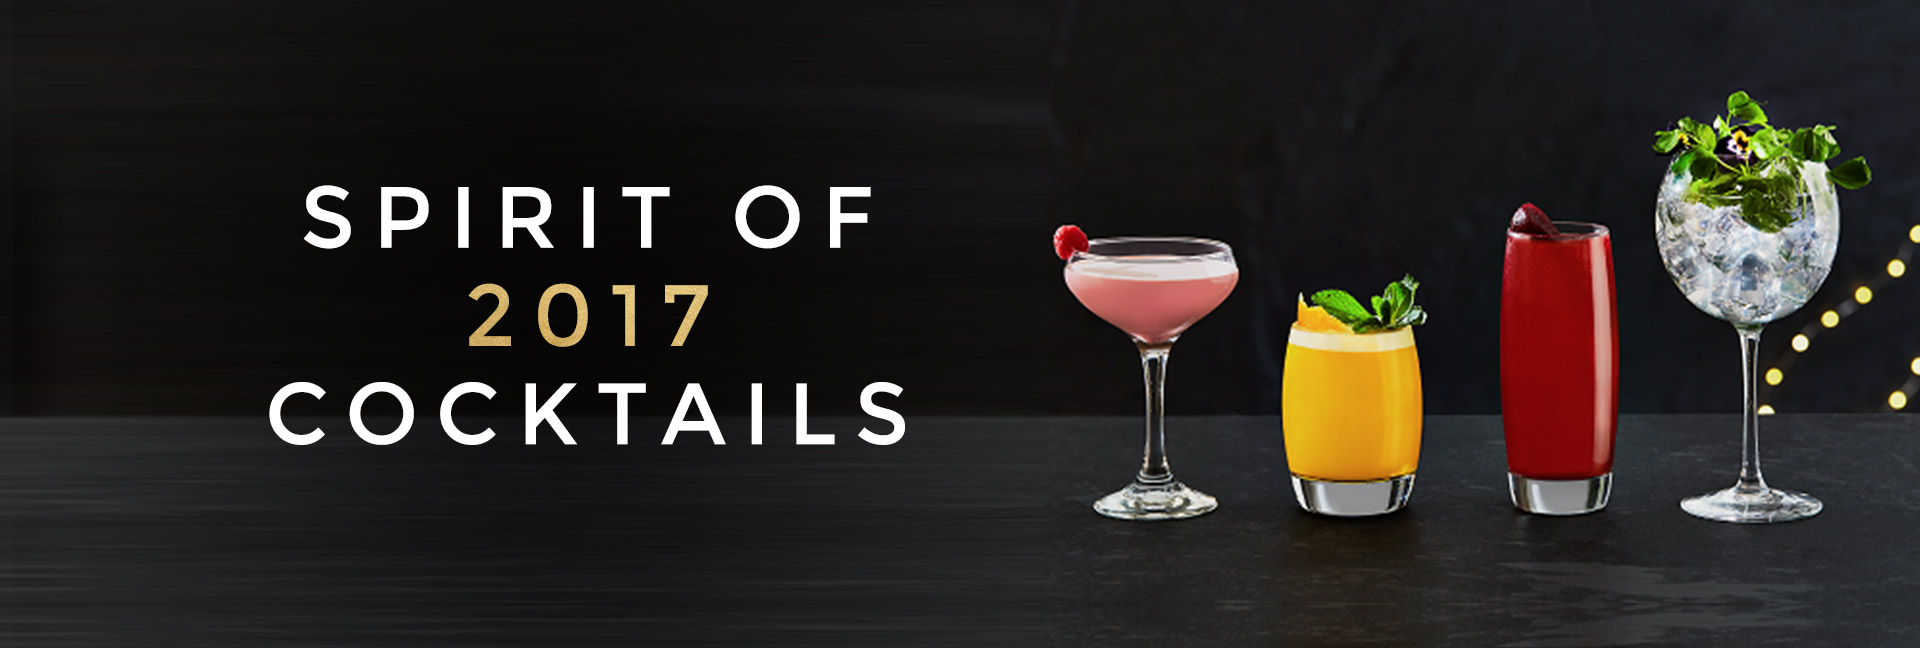 Spirit of 2017 cocktails at All Bar One Clapham Junction